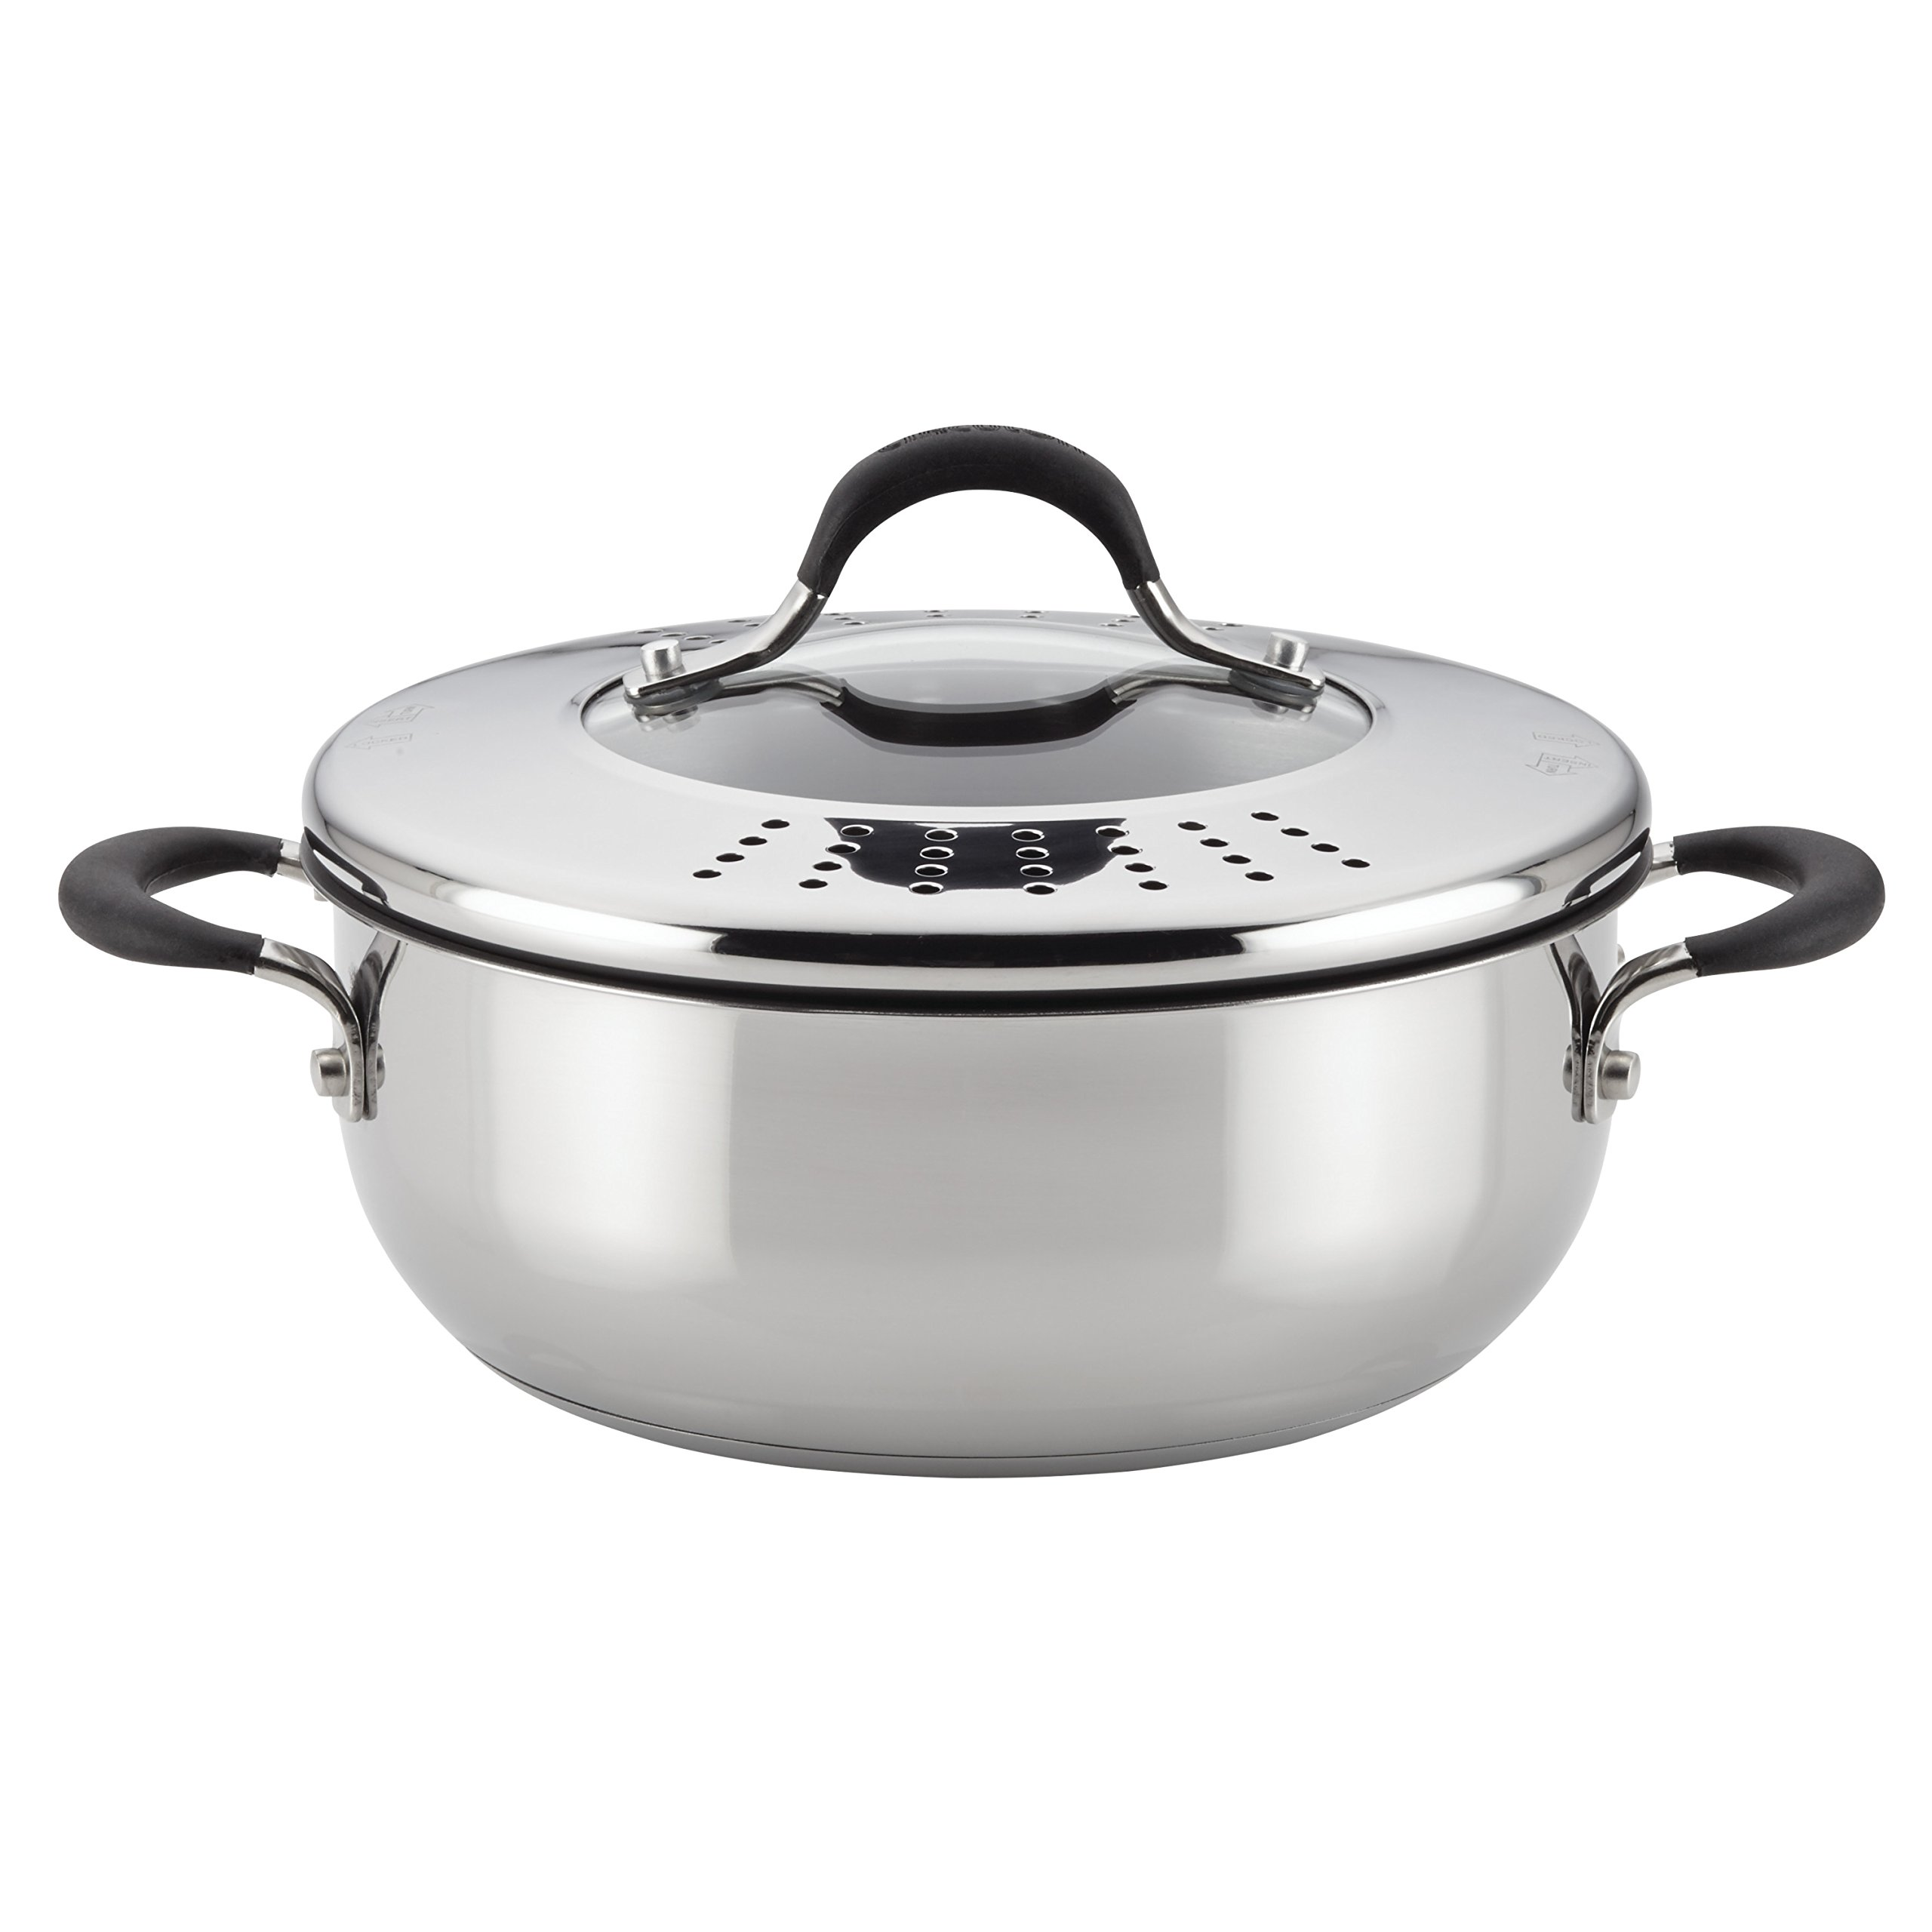 Circulon Momentum Stainless Steel Nonstick 4-Quart Covered Casserole with Locking Straining Lid by Circulon